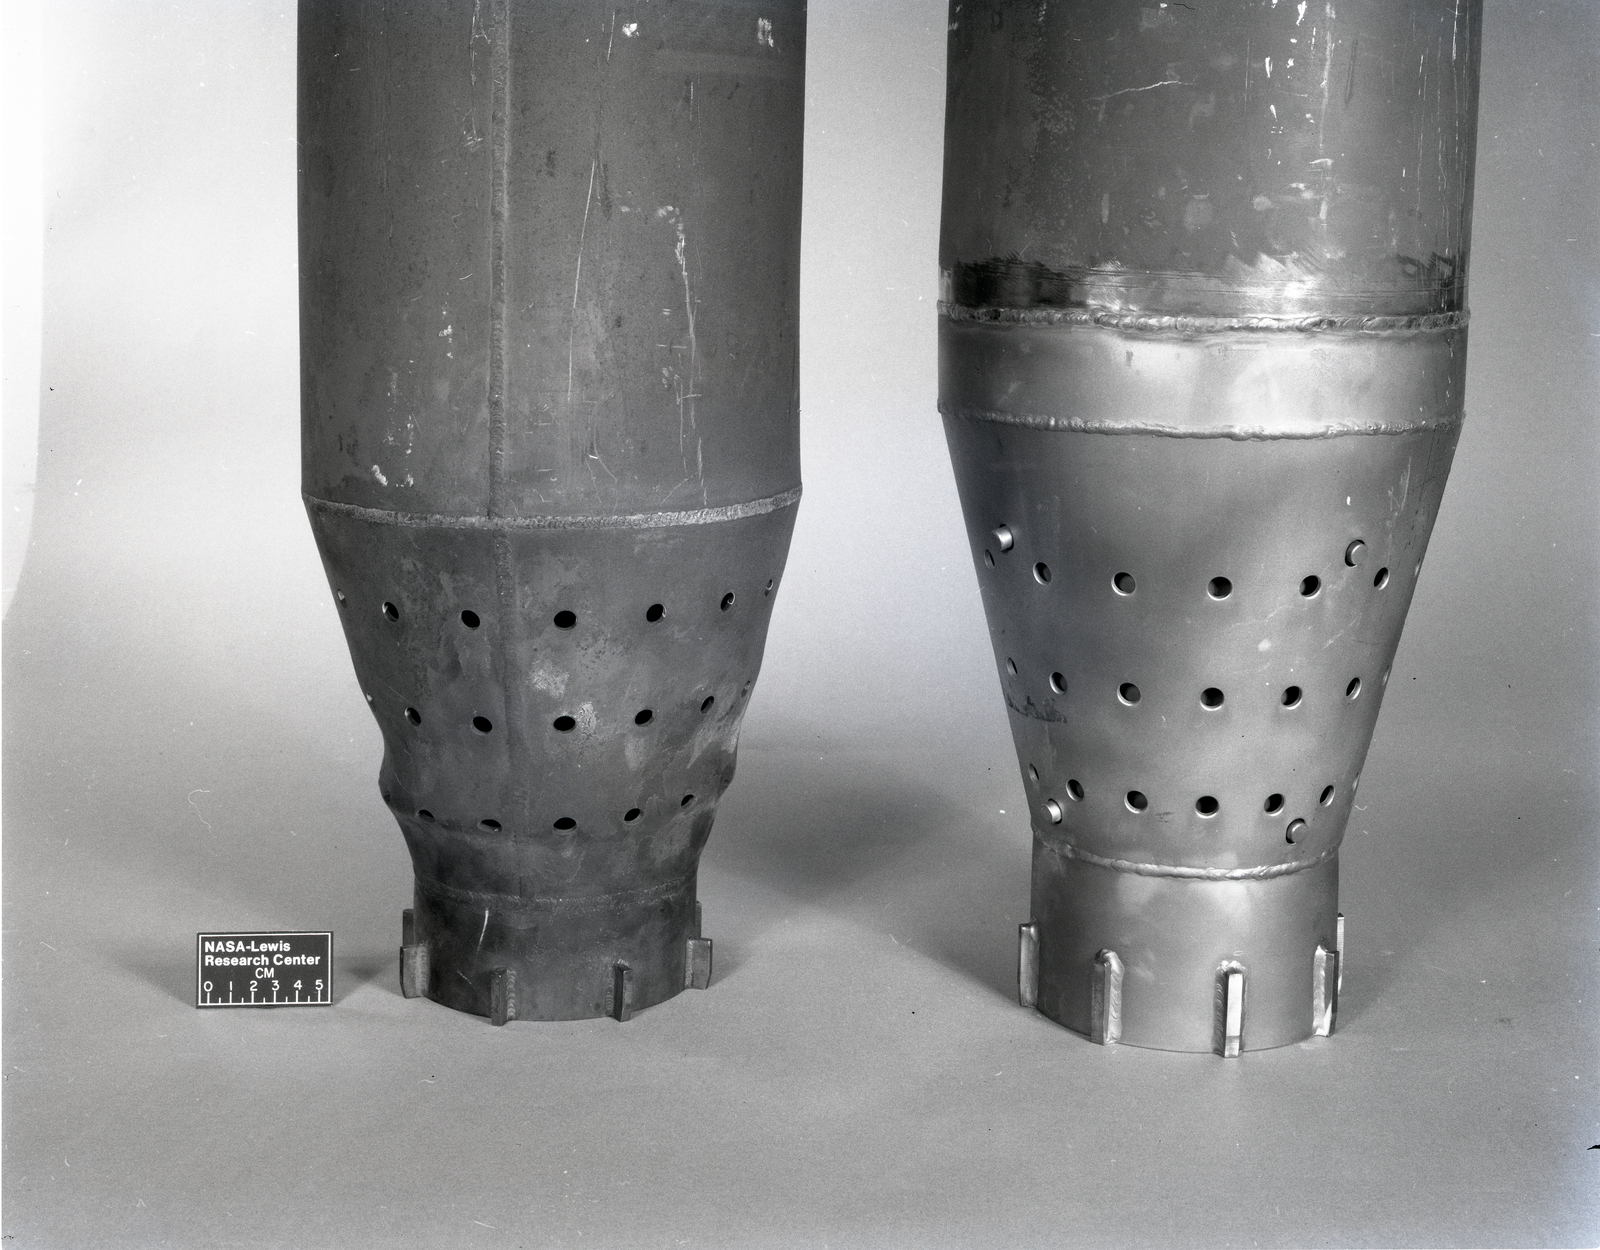 COMBUSTOR LINERS SHOWING DISTORTION OF OLD LINER AND EXISTING CONDITION OF NEW DESIGN LINER